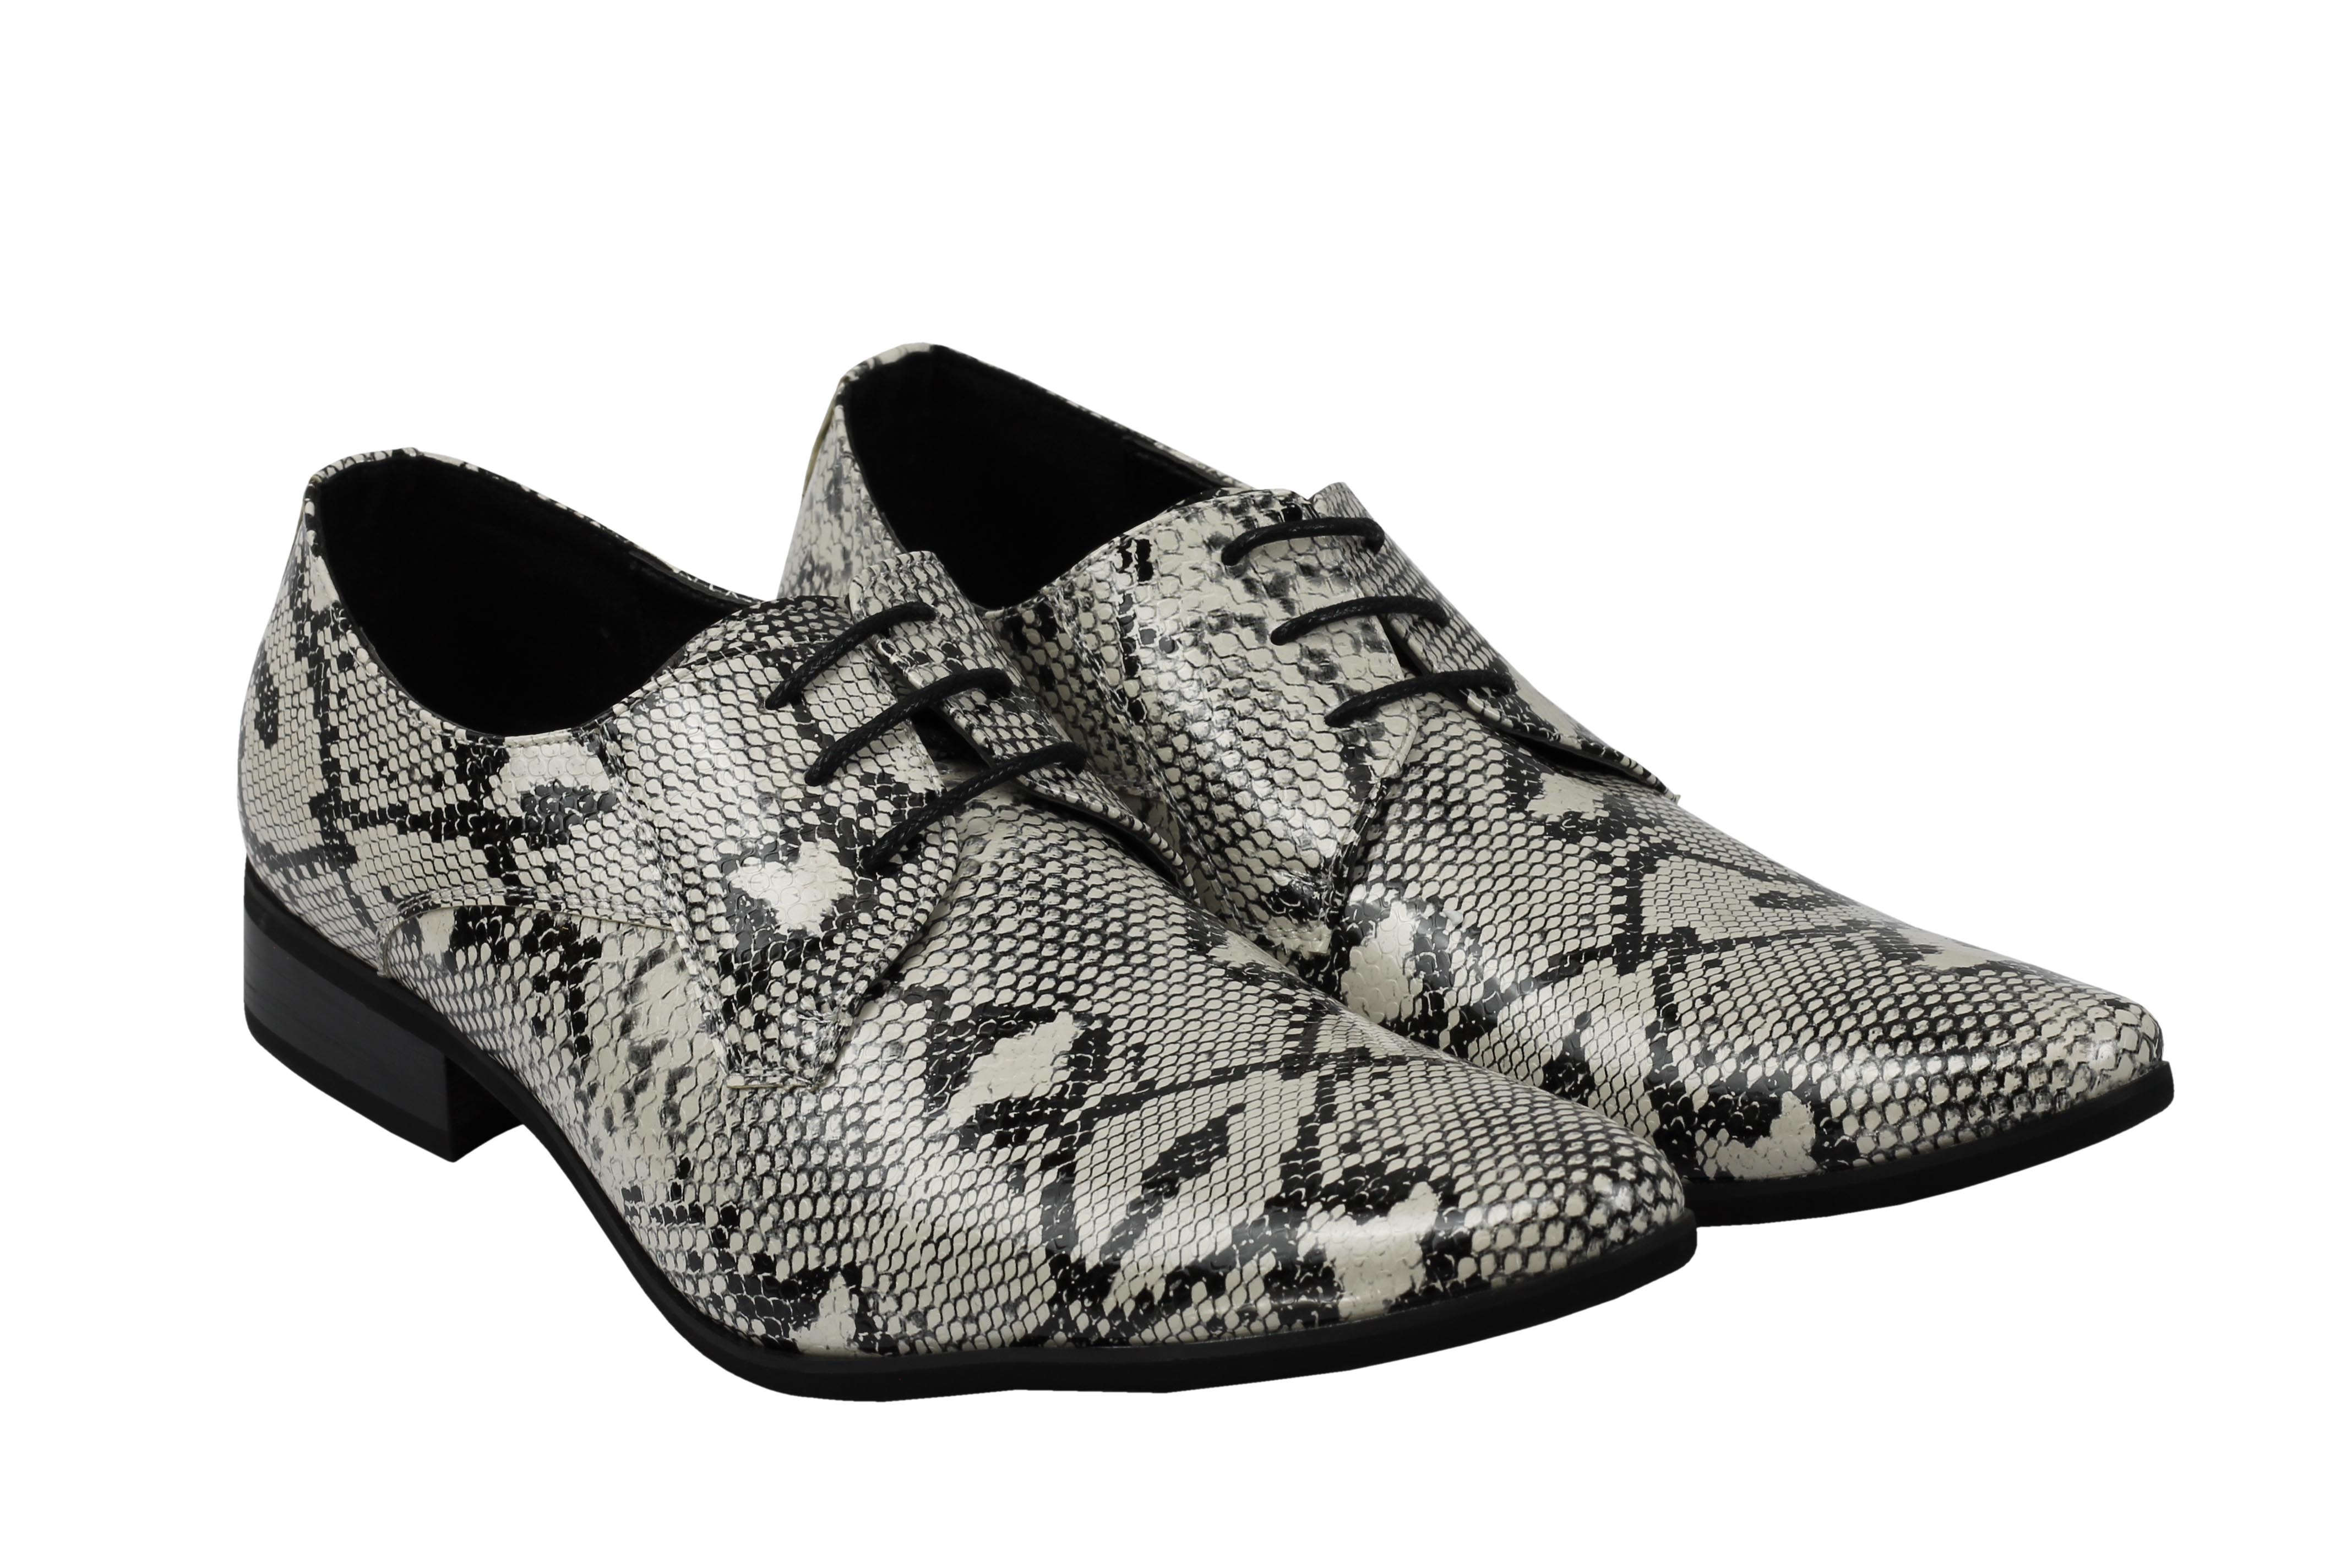 Mens-Leather-Lined-Snake-Skin-Print-Shiny-Patent-Leather-Smart-Party-Retro-Shoes thumbnail 25